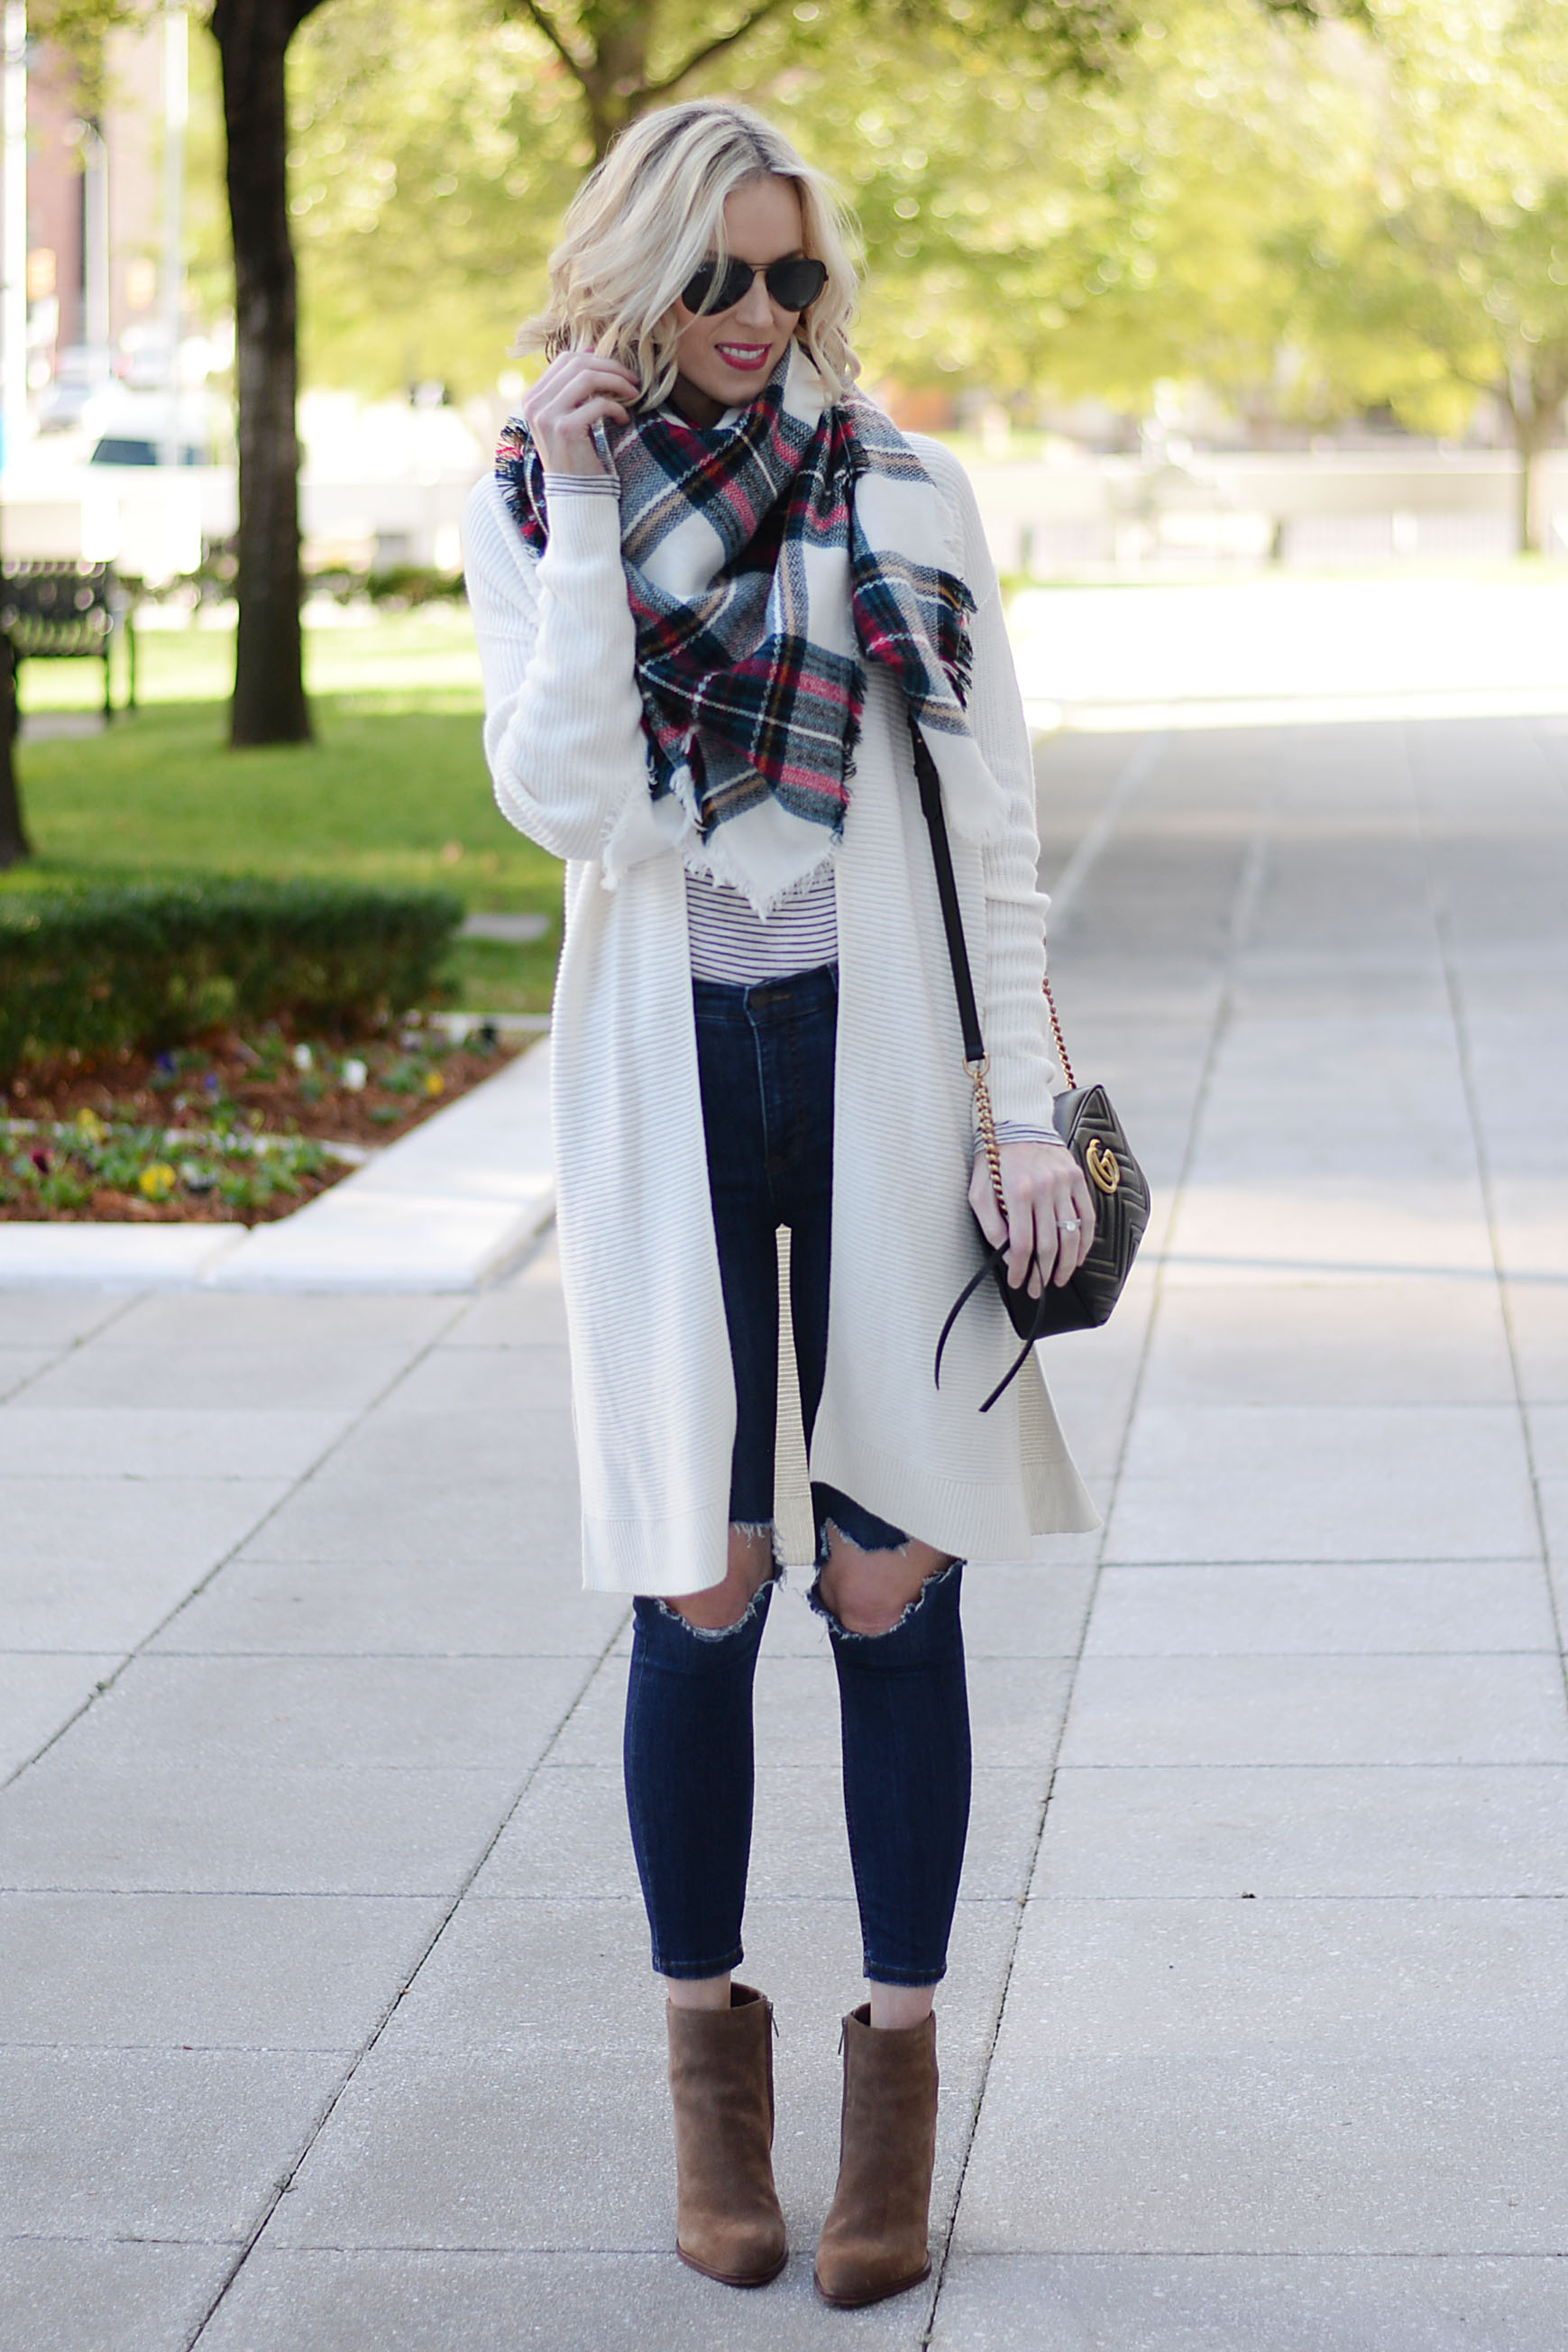 7c6e4cc9580 How to Wear an Oversized Cardigan without Looking Frumpy - Straight ...